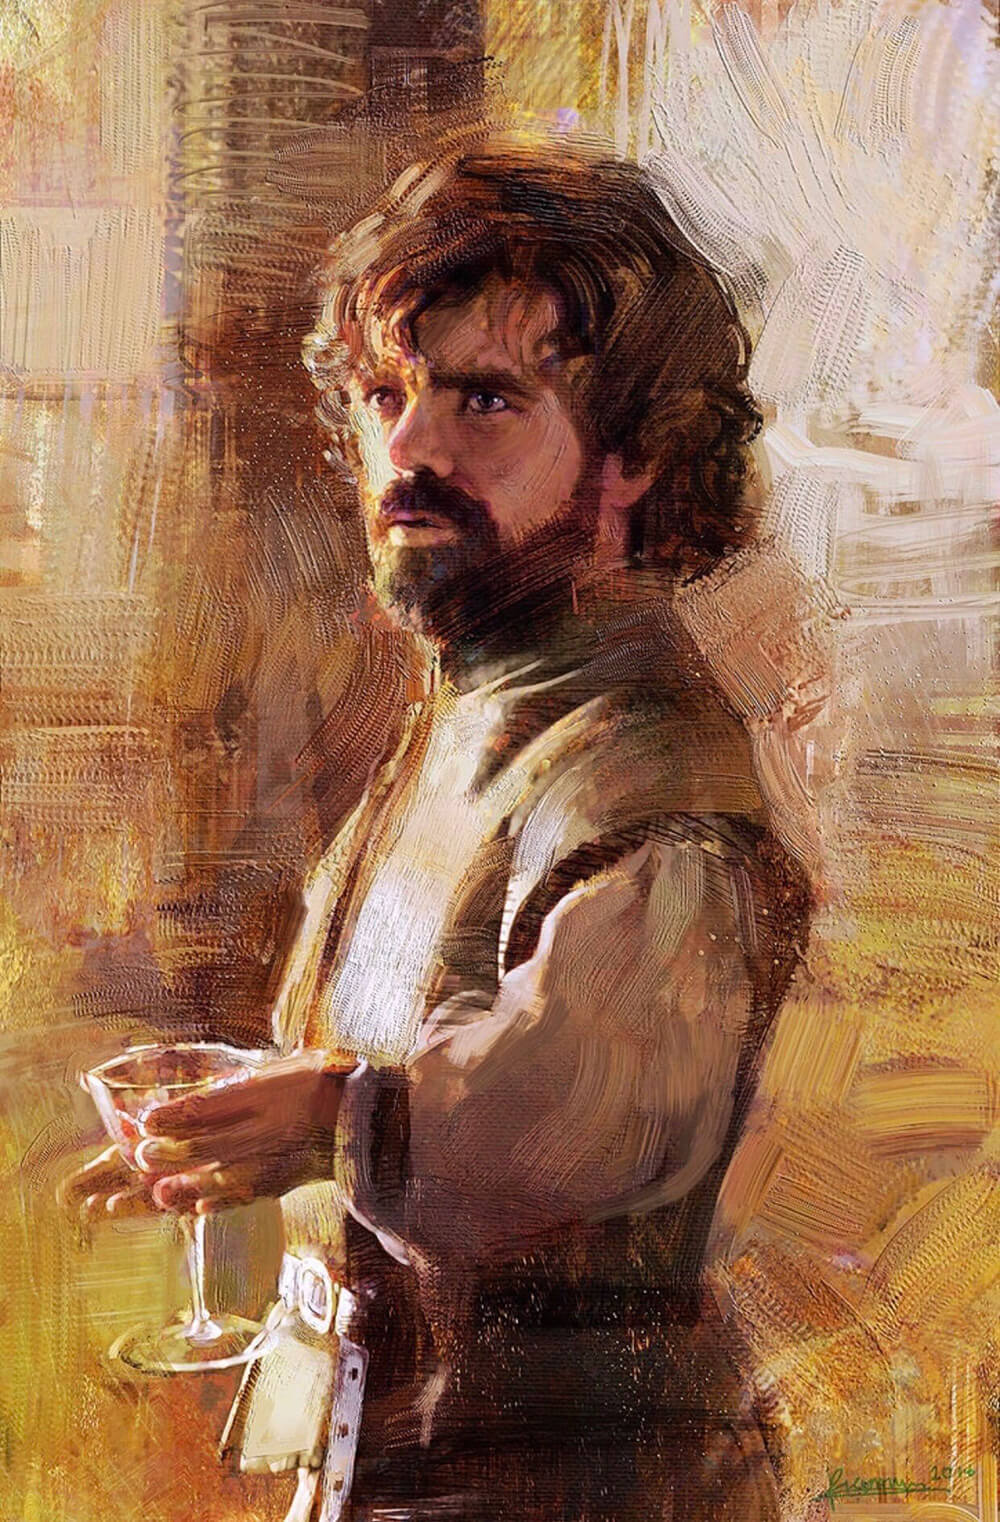 Tyrion Lannister by Richard Foo